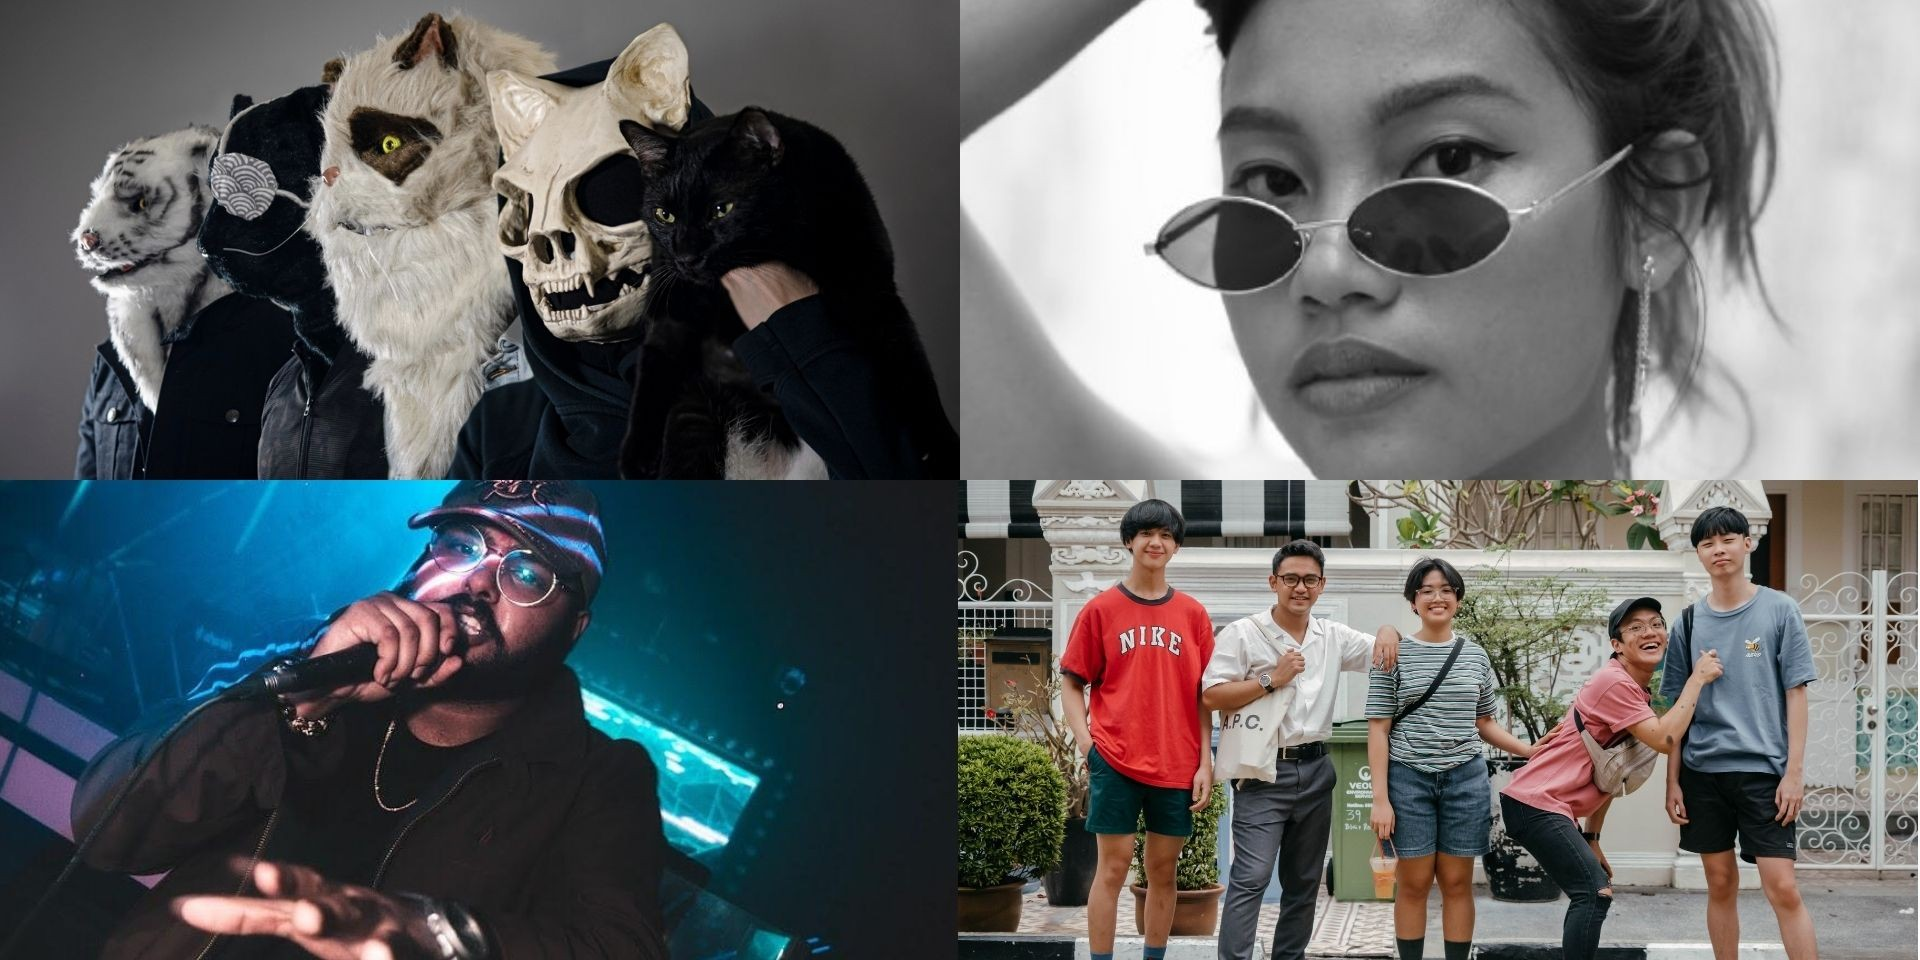 Vans Musicians Wanted Singapore announces 15 finalists including Ultra Mega Cat Attack, Opus Renegade, Khally, Woes, and more